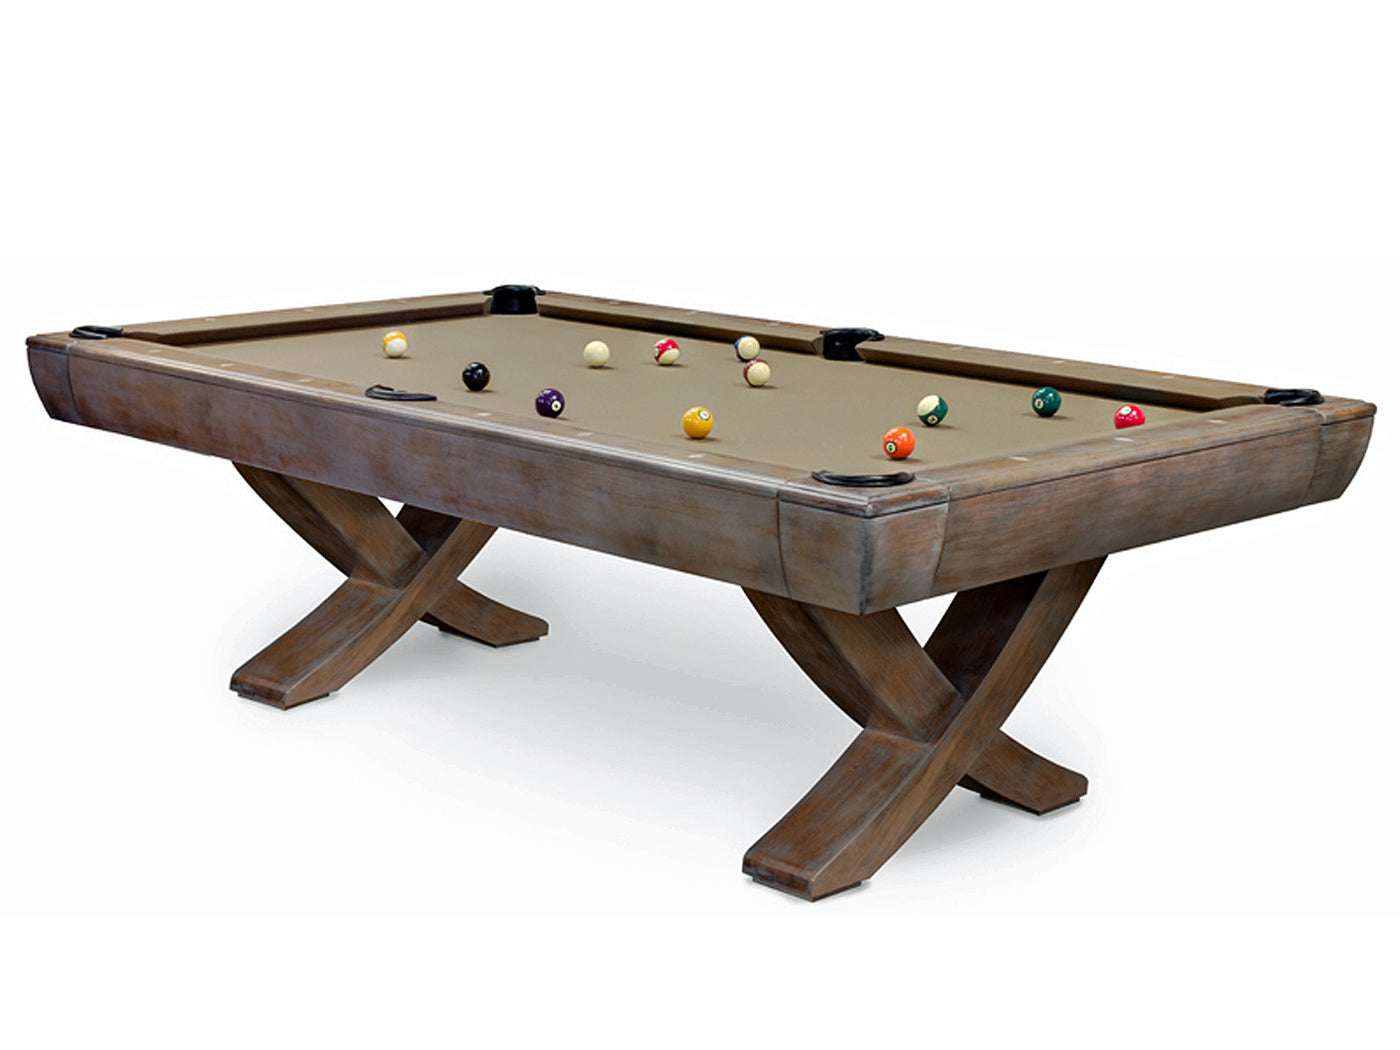 California House Newport Pool Table Robbies Billiards - Newport pool table